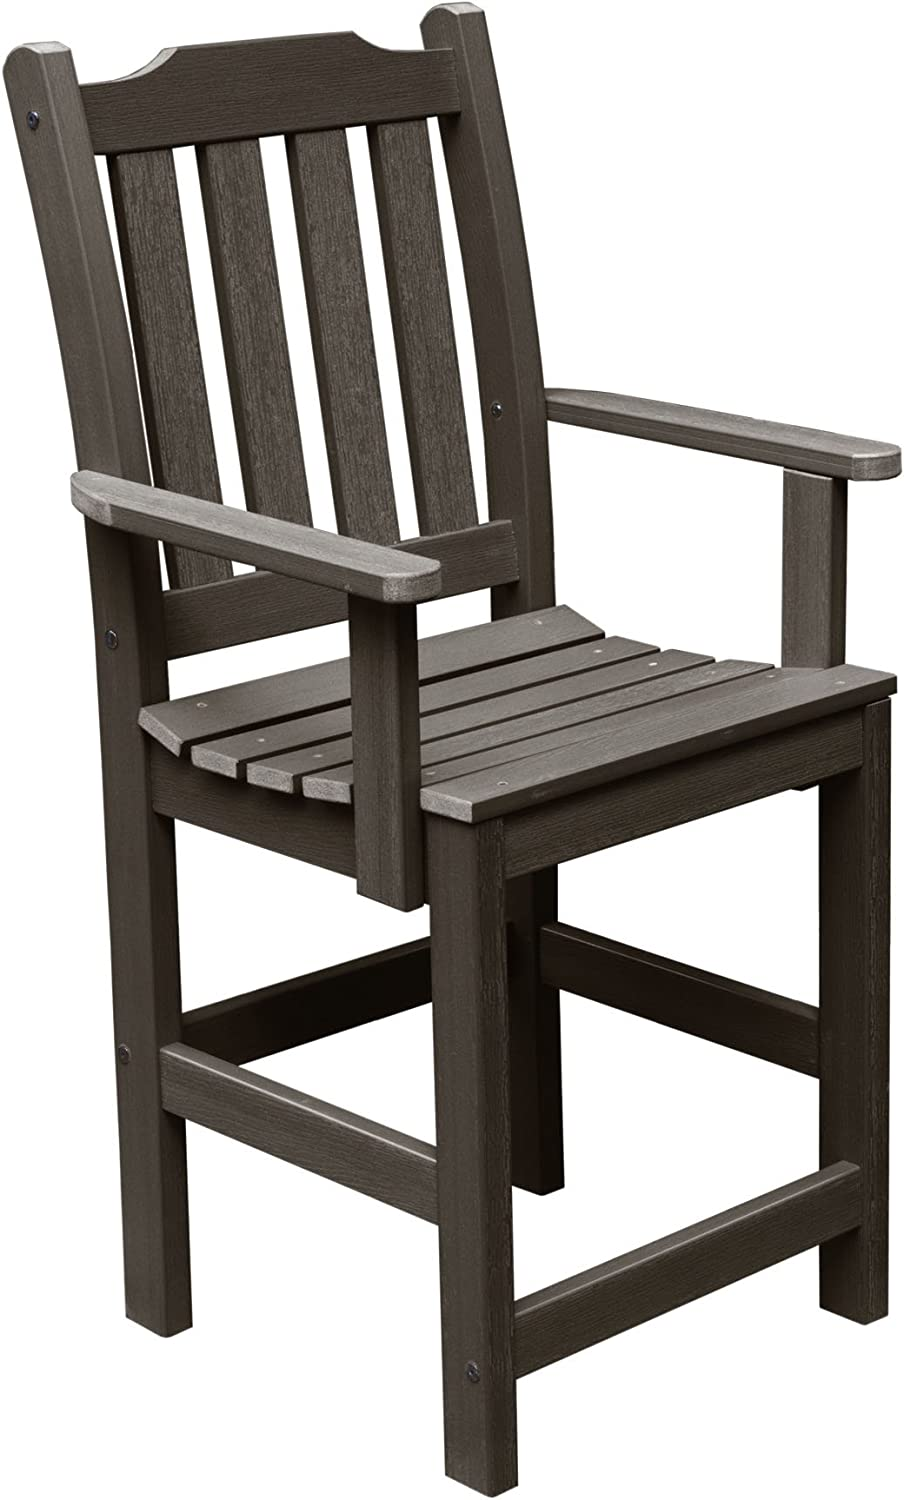 Highwood AD-CHCL2-ACE Lehigh Counter Height Armchair, Weathered Acorn